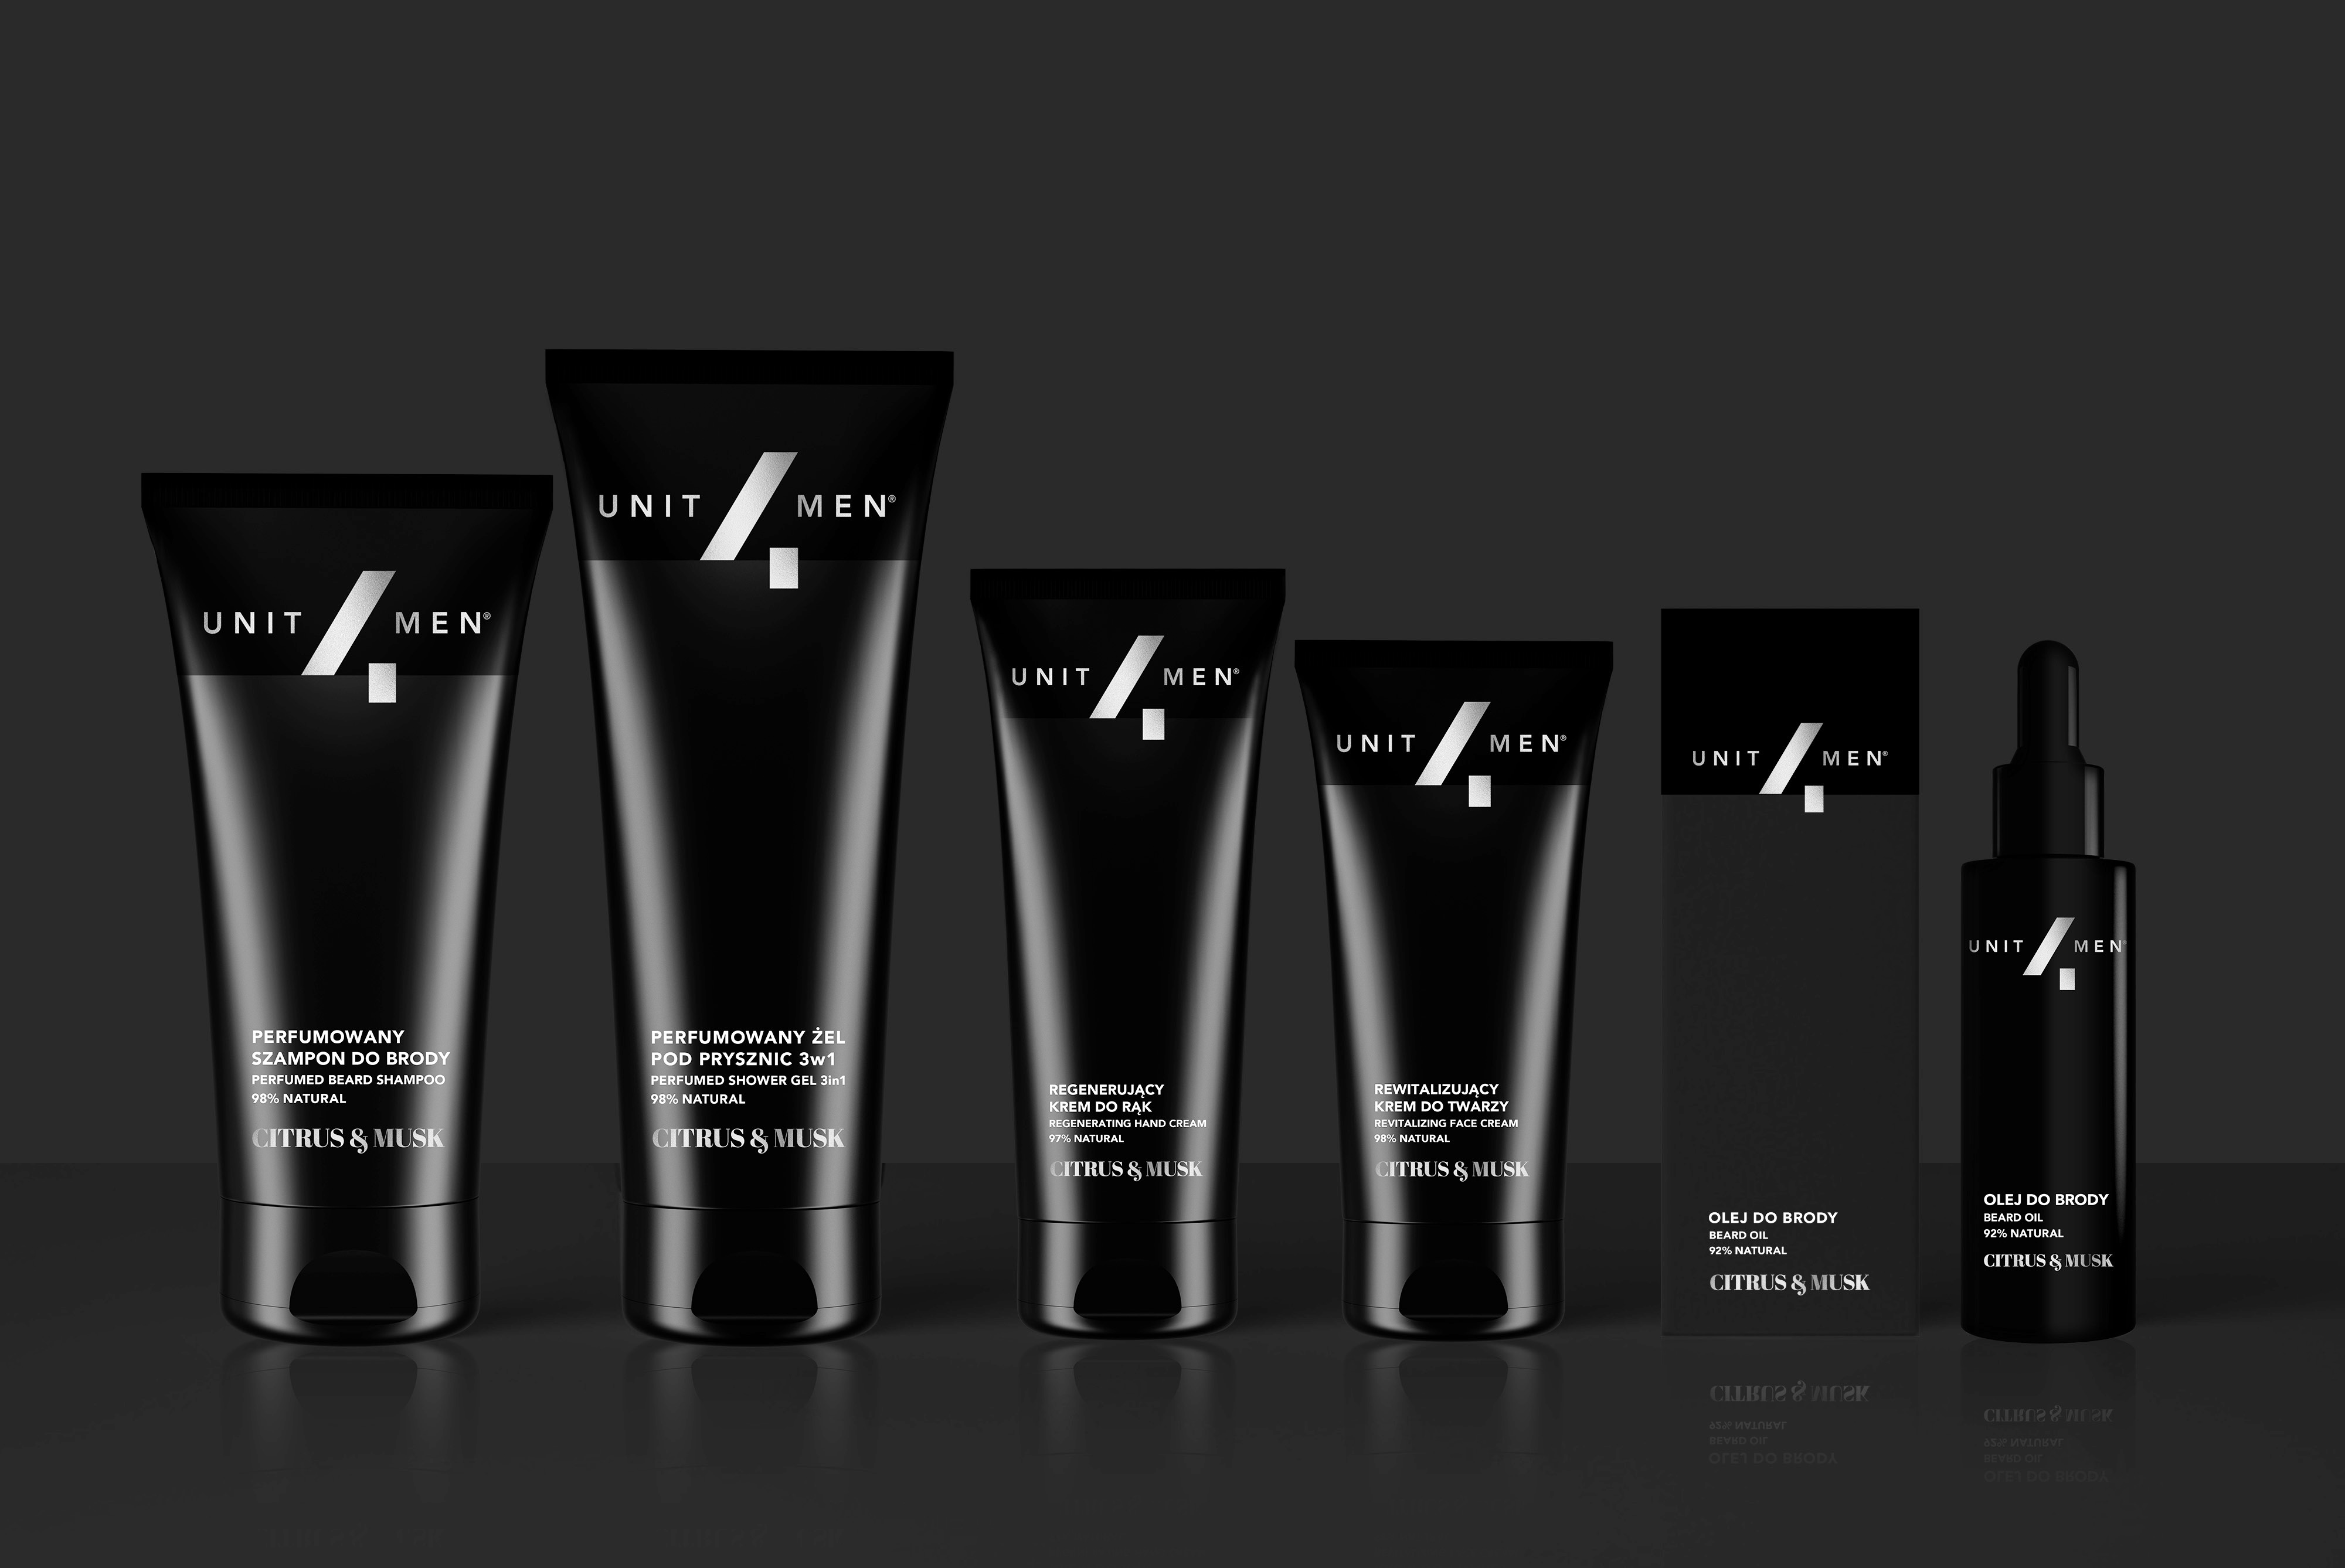 men's grooming cosmetics range UNIT4MEN